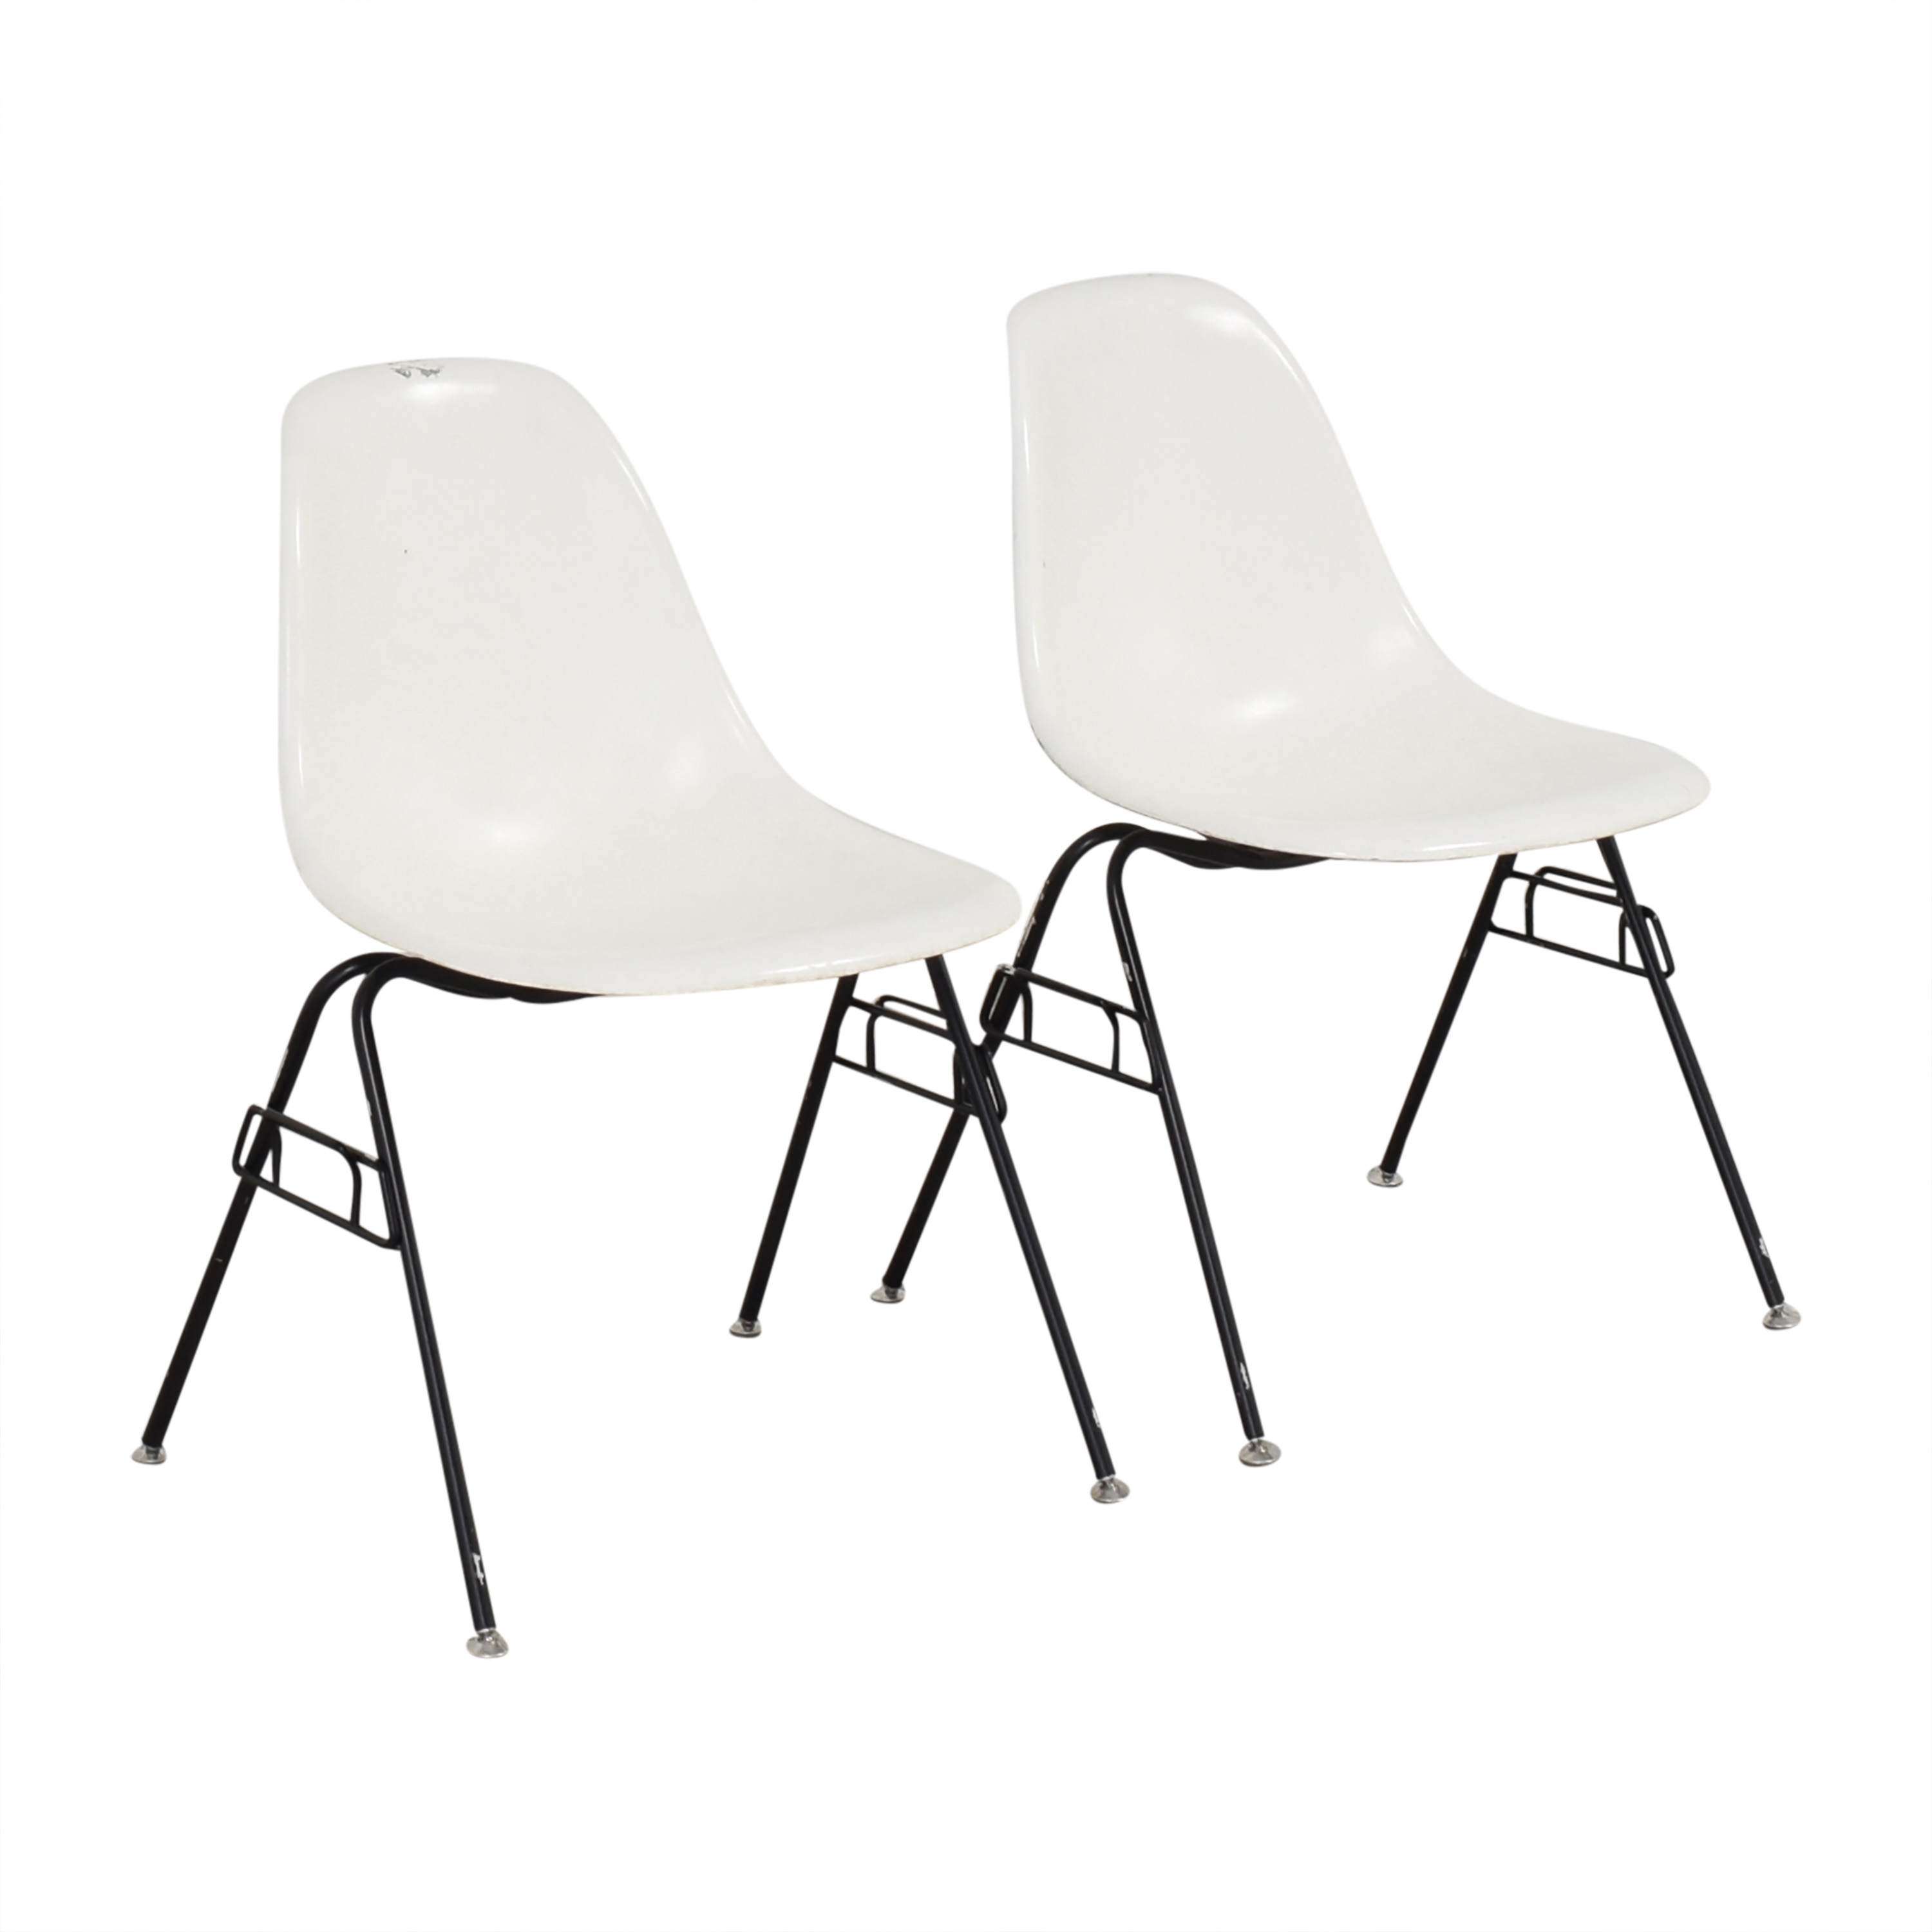 buy Modernica Modernica Case Study Furniture Side Shell Stacking Chairs online